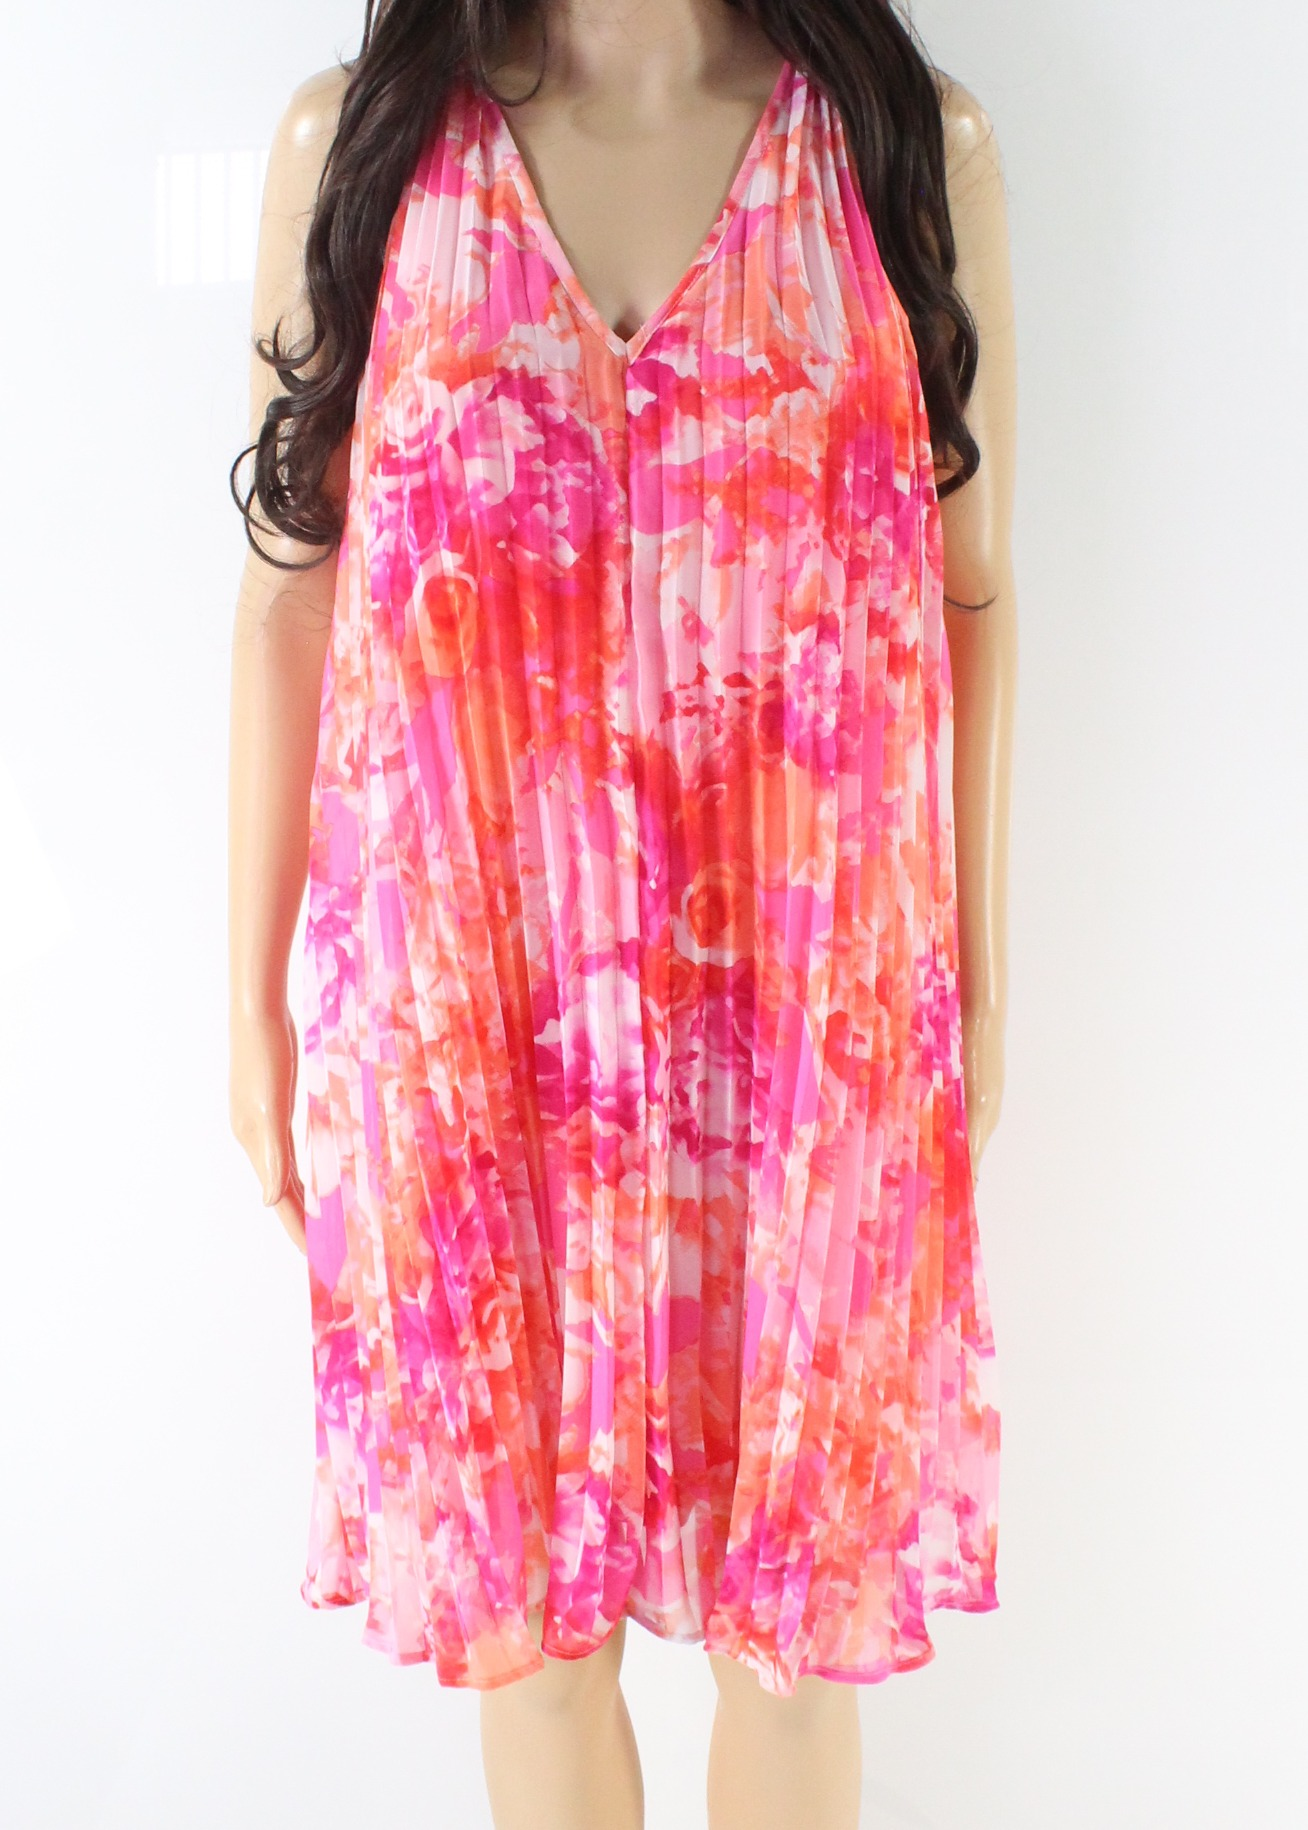 Vince-Camuto-NEW-Pink-Women-039-s-Size-2-Floral-Pleated-V-Neck-Shift-Dress